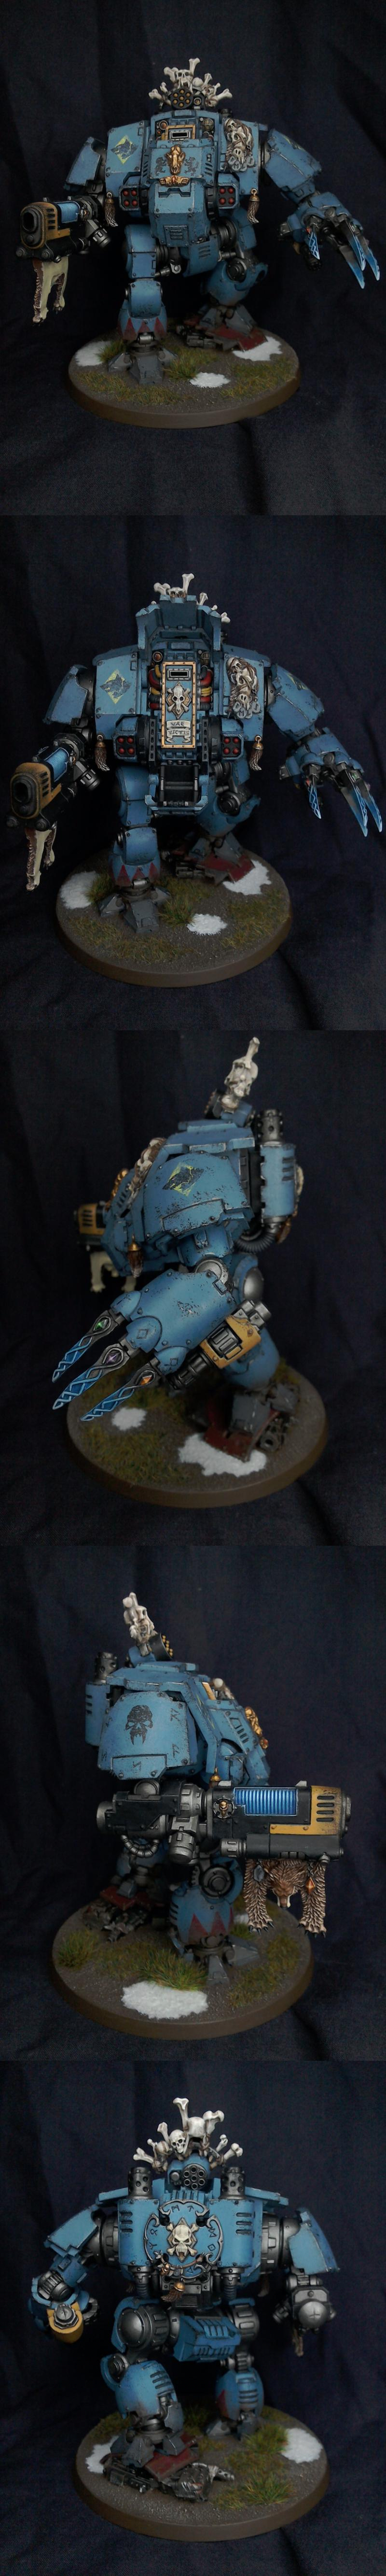 Dreadnought, Primaris, Redemptor, Space Marines, Space Wolves, Warhammer 40,000